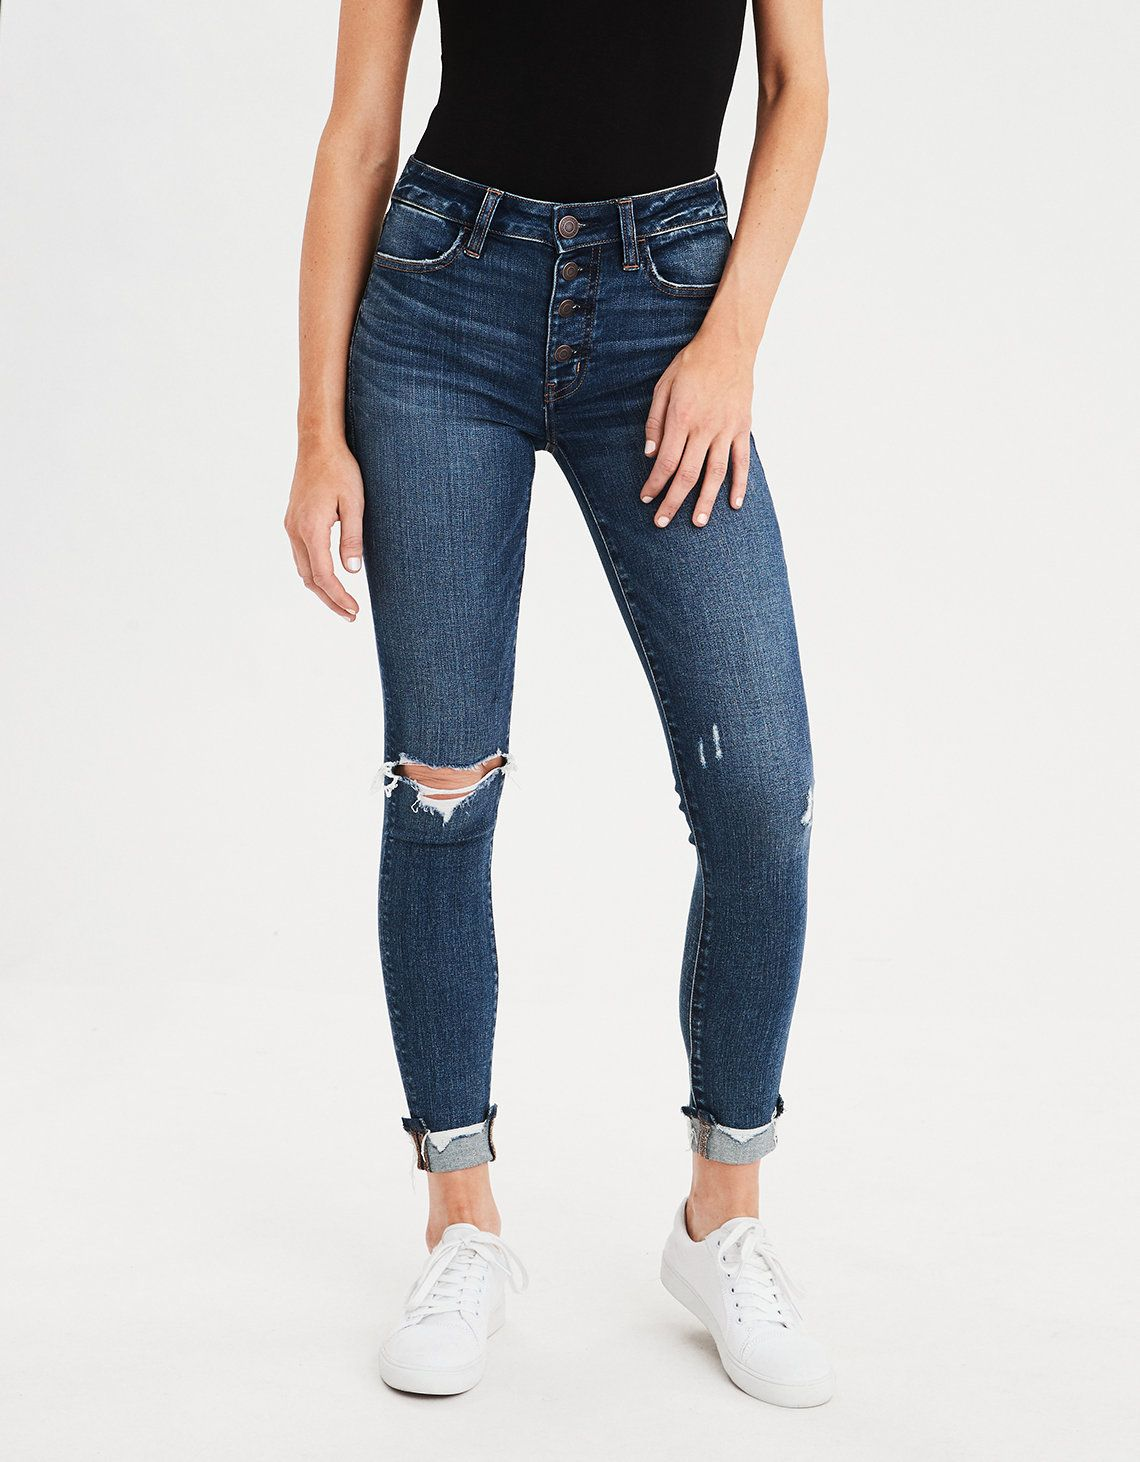 19df866a7b628 AE Ne(X)t Level High-Waisted Jegging Crop, Faded Indigo | American Eagle  Outfitters